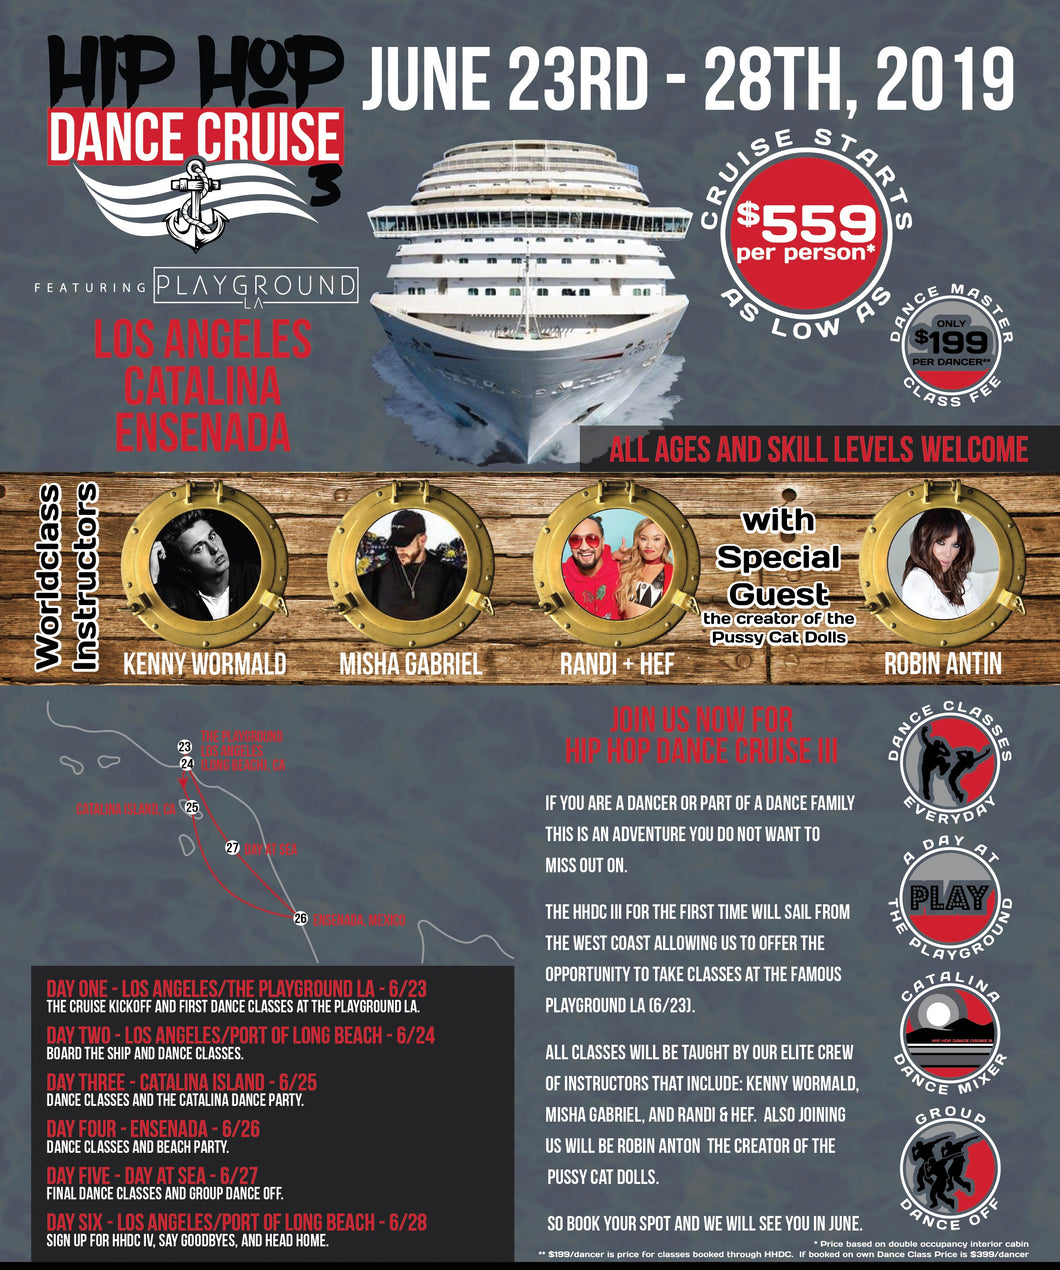 Hip hop dance cruise class fee (Discounted rate won't last long)